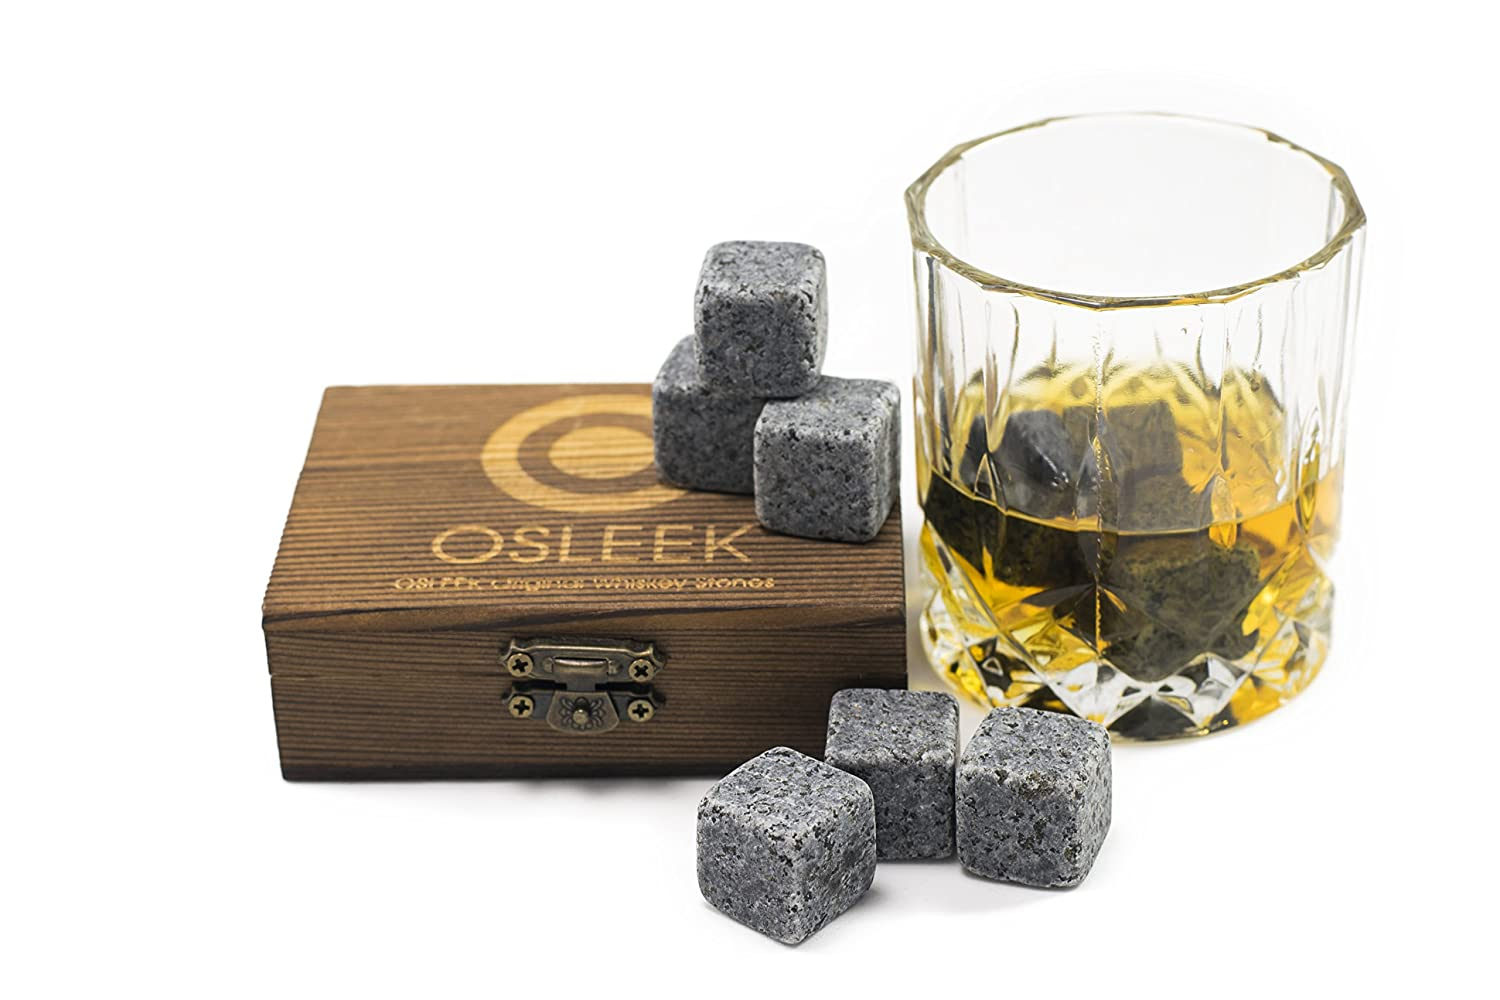 Whiskey Stones - Gift Set of 9 Pure Soapstone Chilling Rocks With Velvet Freezer Carrying Pouch | Reusable Ice Cubes | Prevents Water Dilution |Packed in Decorative Wood Souvenir Box